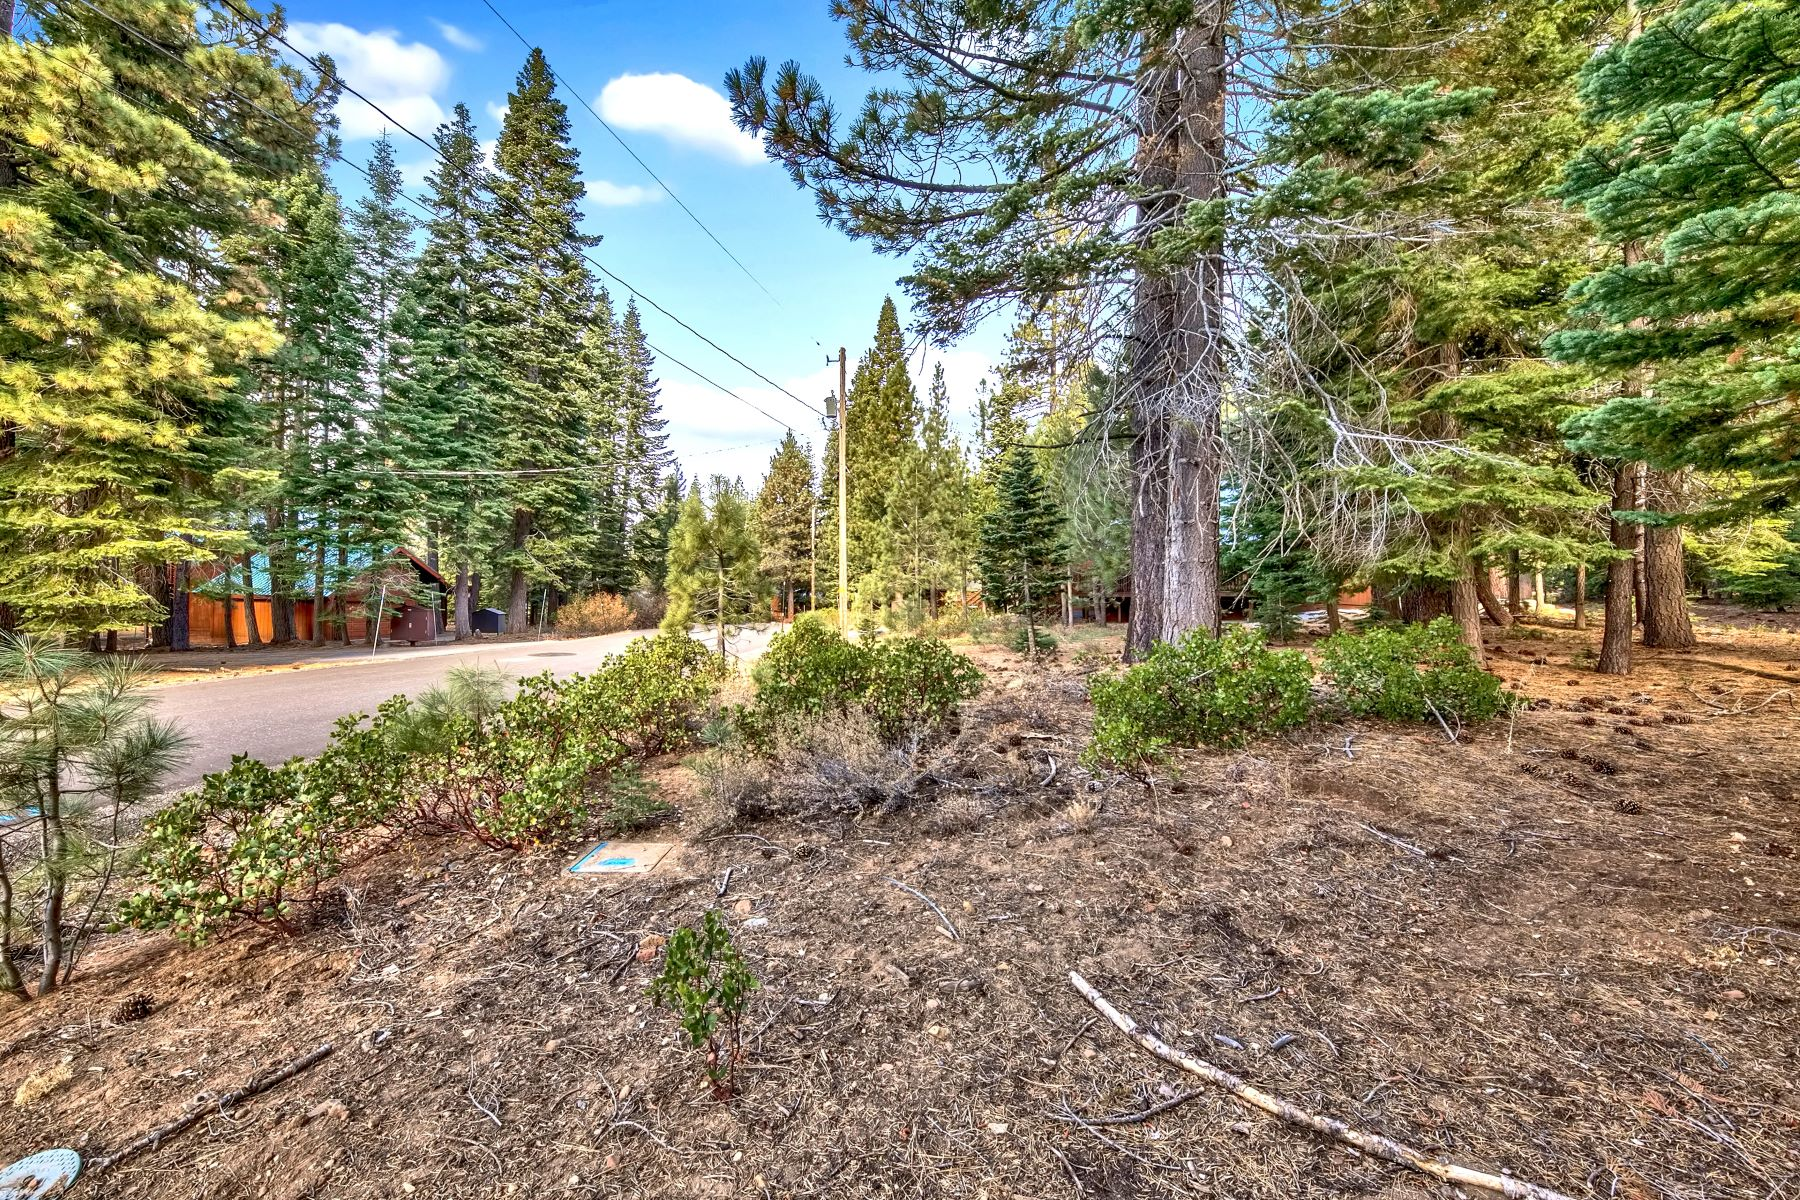 Additional photo for property listing at 12016 Mougle Lane Truckee California 96161 12016 Mogule Lane Truckee, California 96161 United States